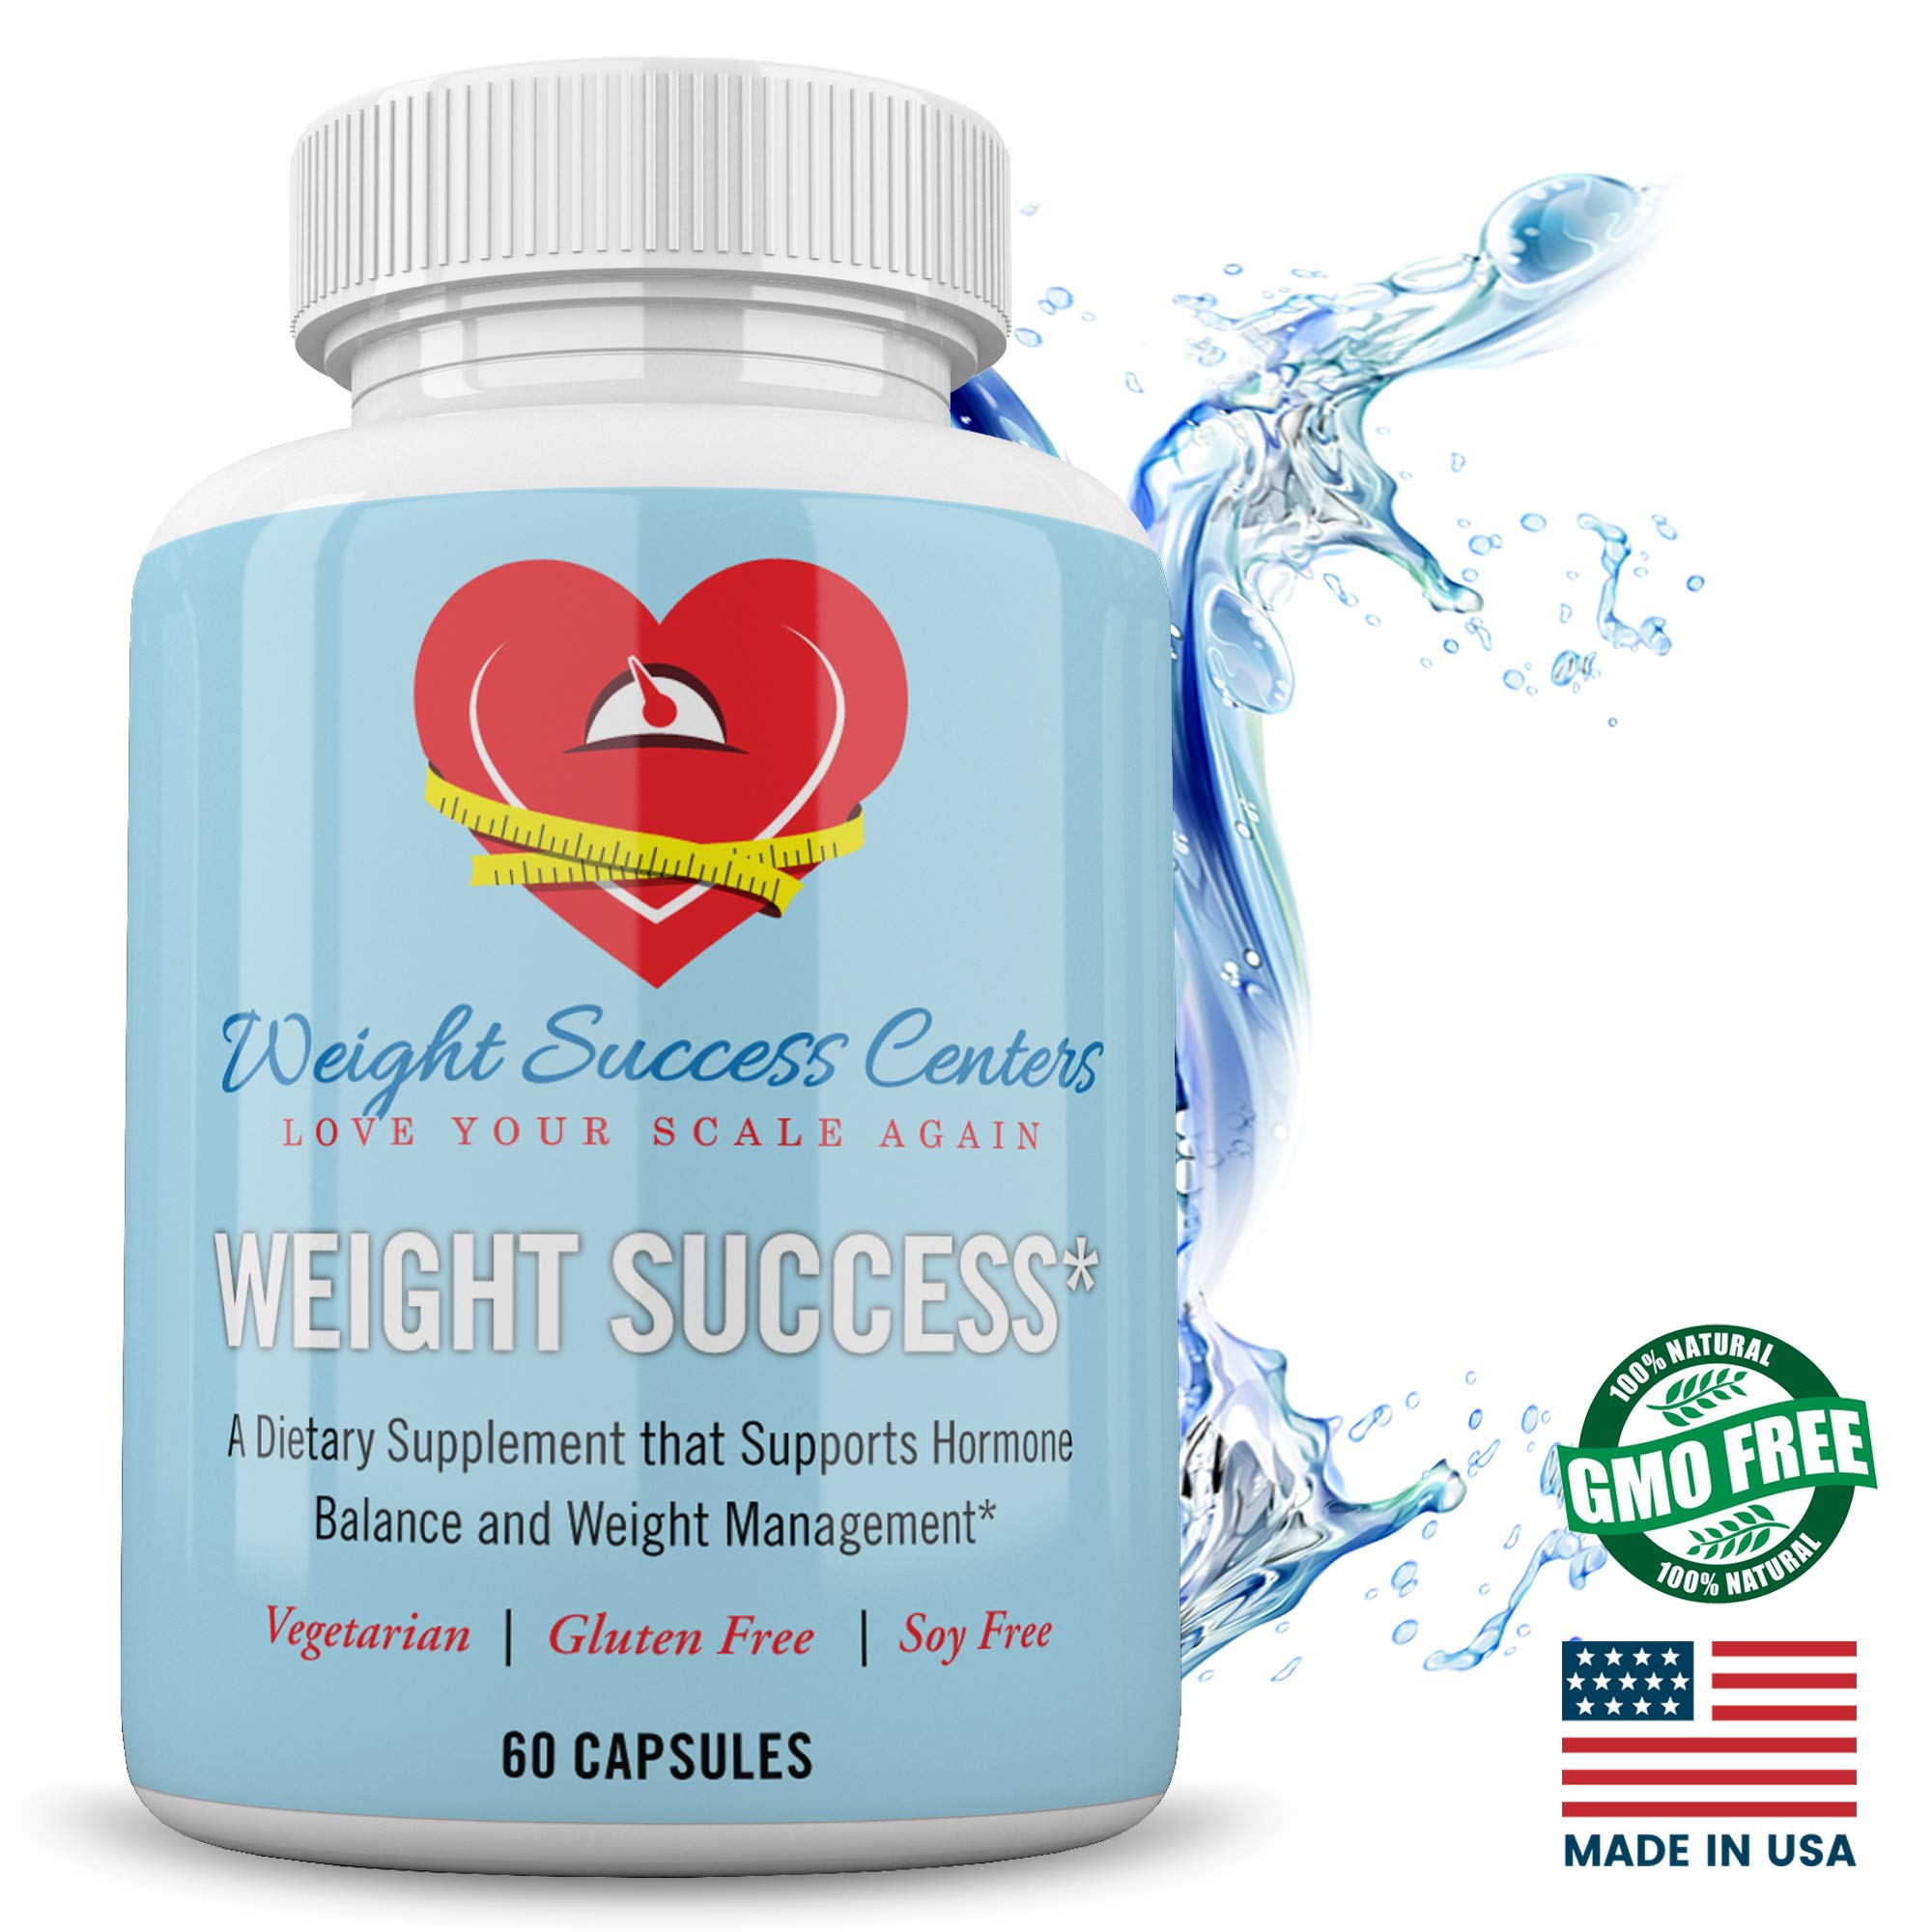 Weight Success Fat Burning Pills - Weight Loss Supplements - Natural Extract Dietary Supplements - Vegetarian Friendly Soy Free Gluten Free Diet Pills - 60 Capsules by Weight Success Centers, LLC